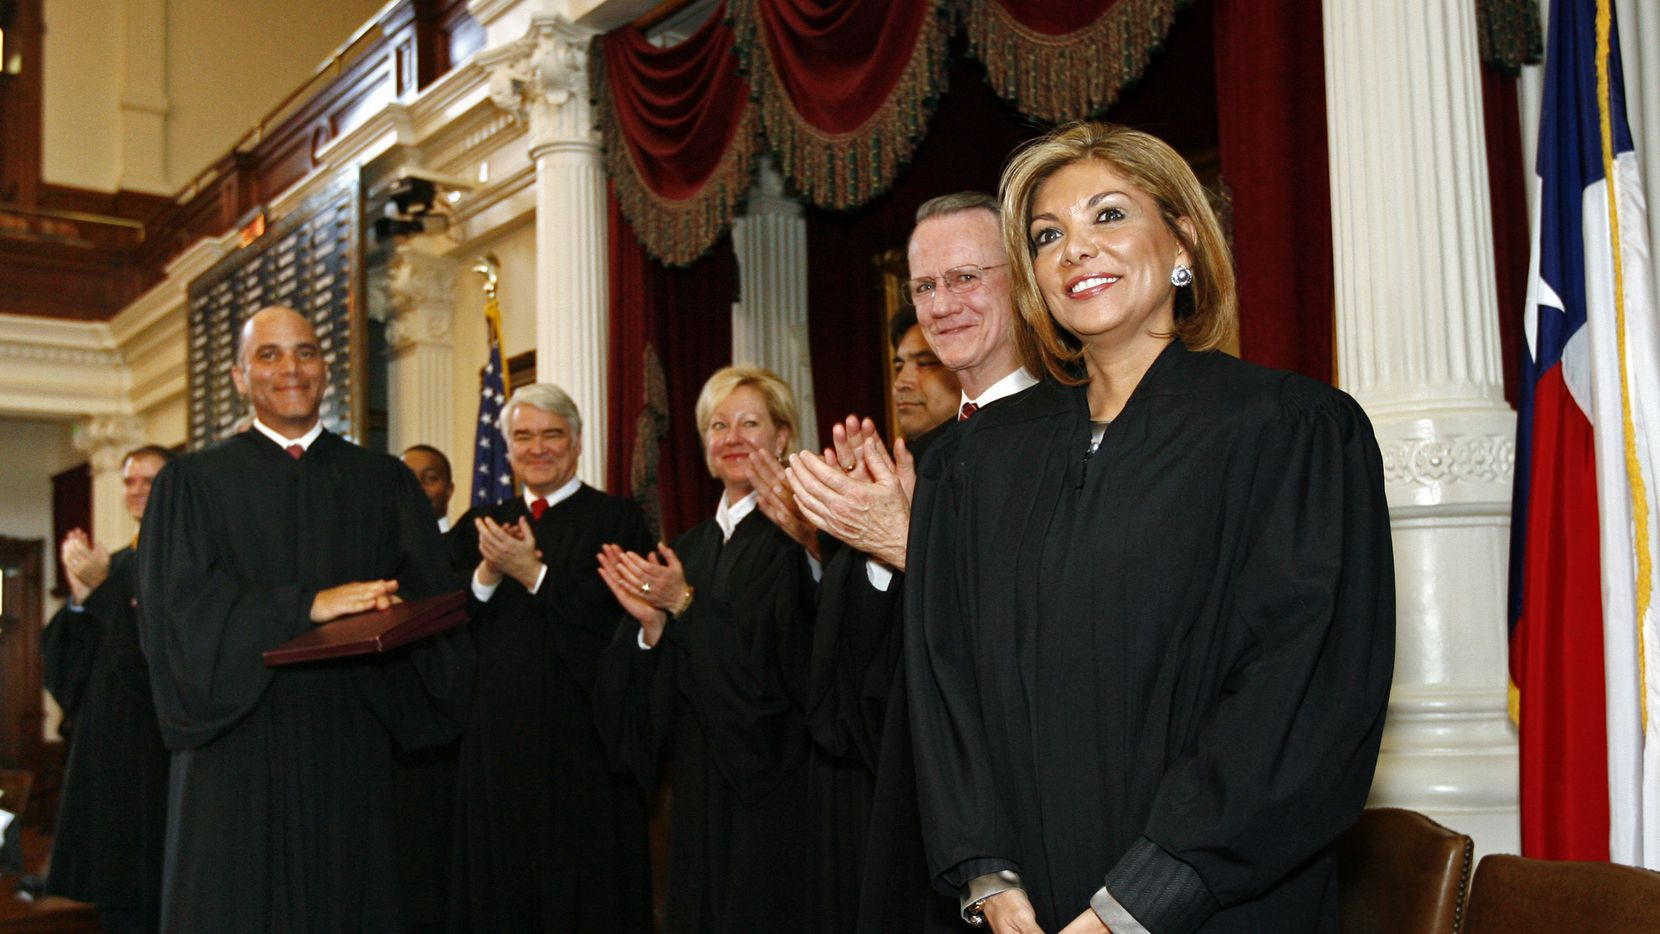 ORG XMIT: TXES103 Justice Eva A. Guzman is congratulated by fellow justices after being  sworn into the Texas Supreme Court by Texas Gov. Rick Perry at the Texas State Capitol in Austin, Texas, Monday, Jan. 11, 2010. (AP Photo/Erich Schlegel)